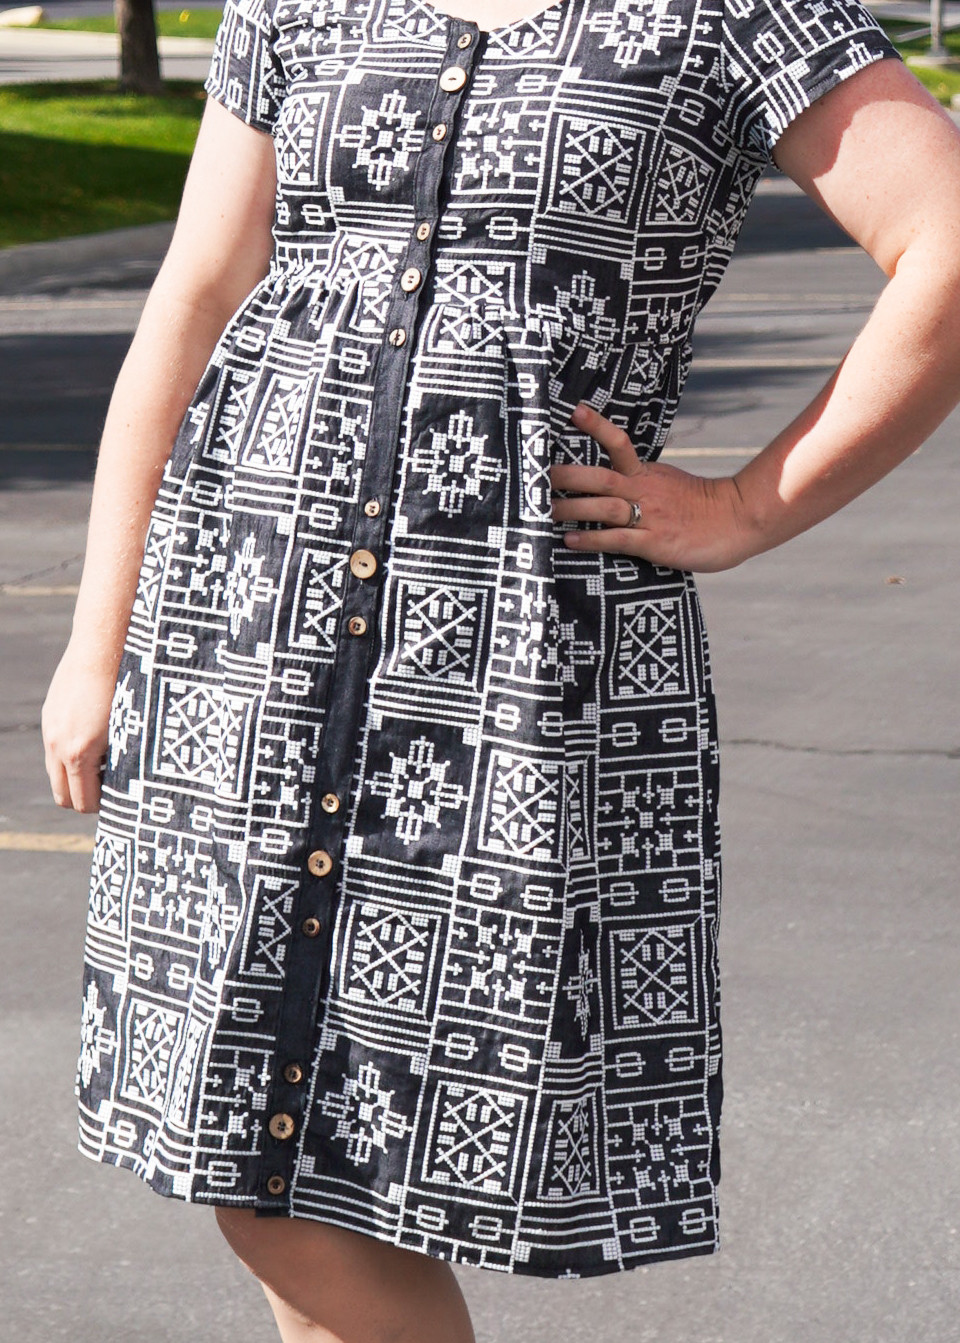 The Hinterland Dress by Sew Liberated